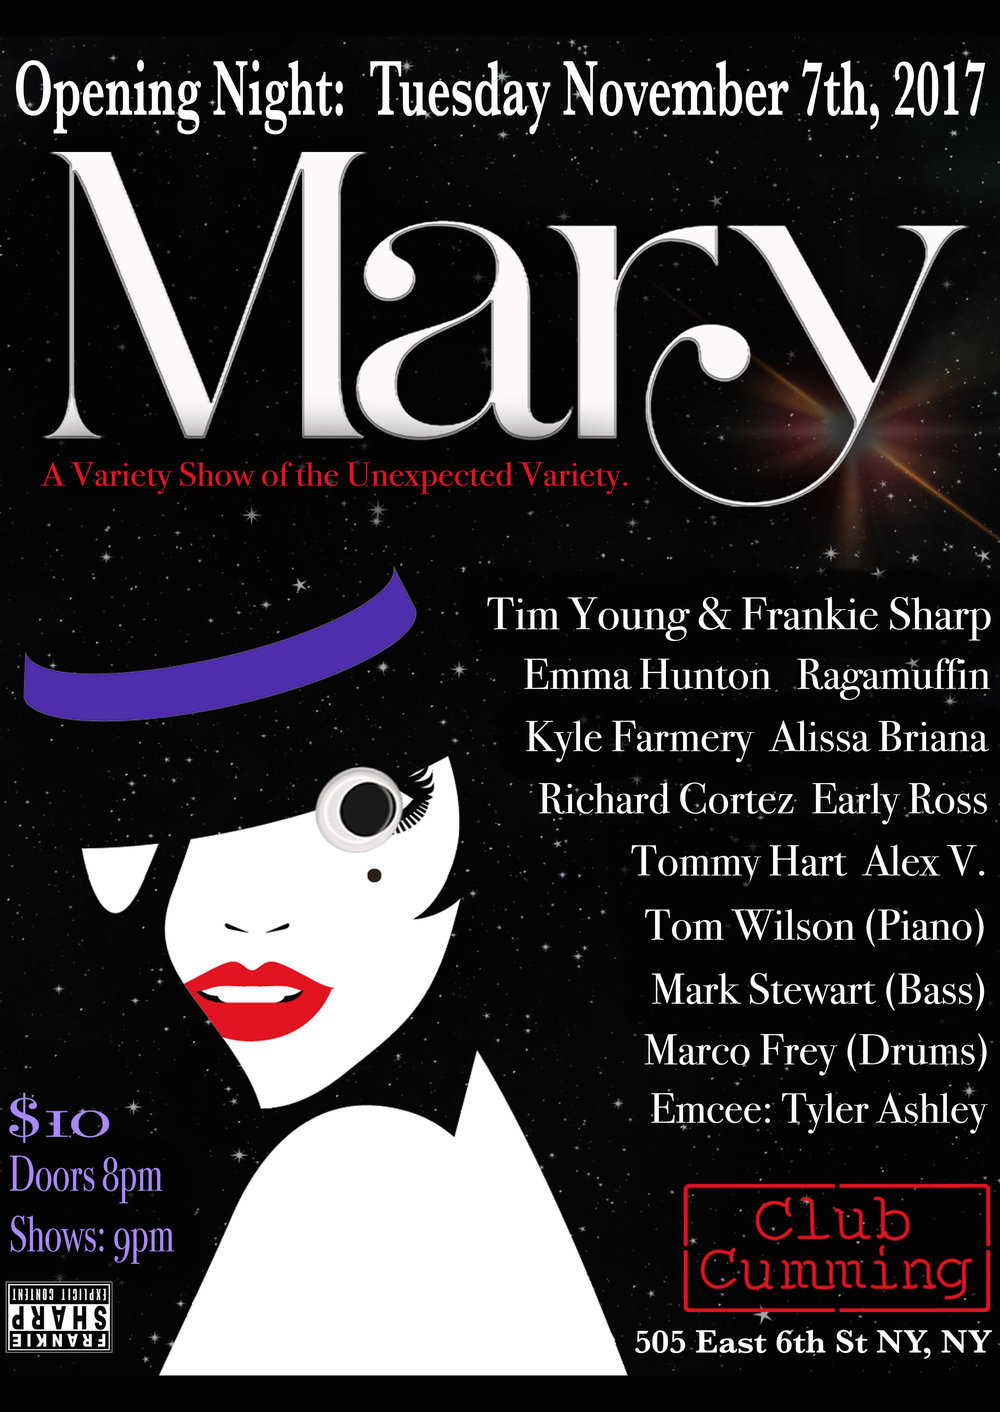 Mary at Club Cumming (Live Cabaret) - Co-Director and PerformerCurrently running every Tuesday night, 9PM at Club Cumming in NYC